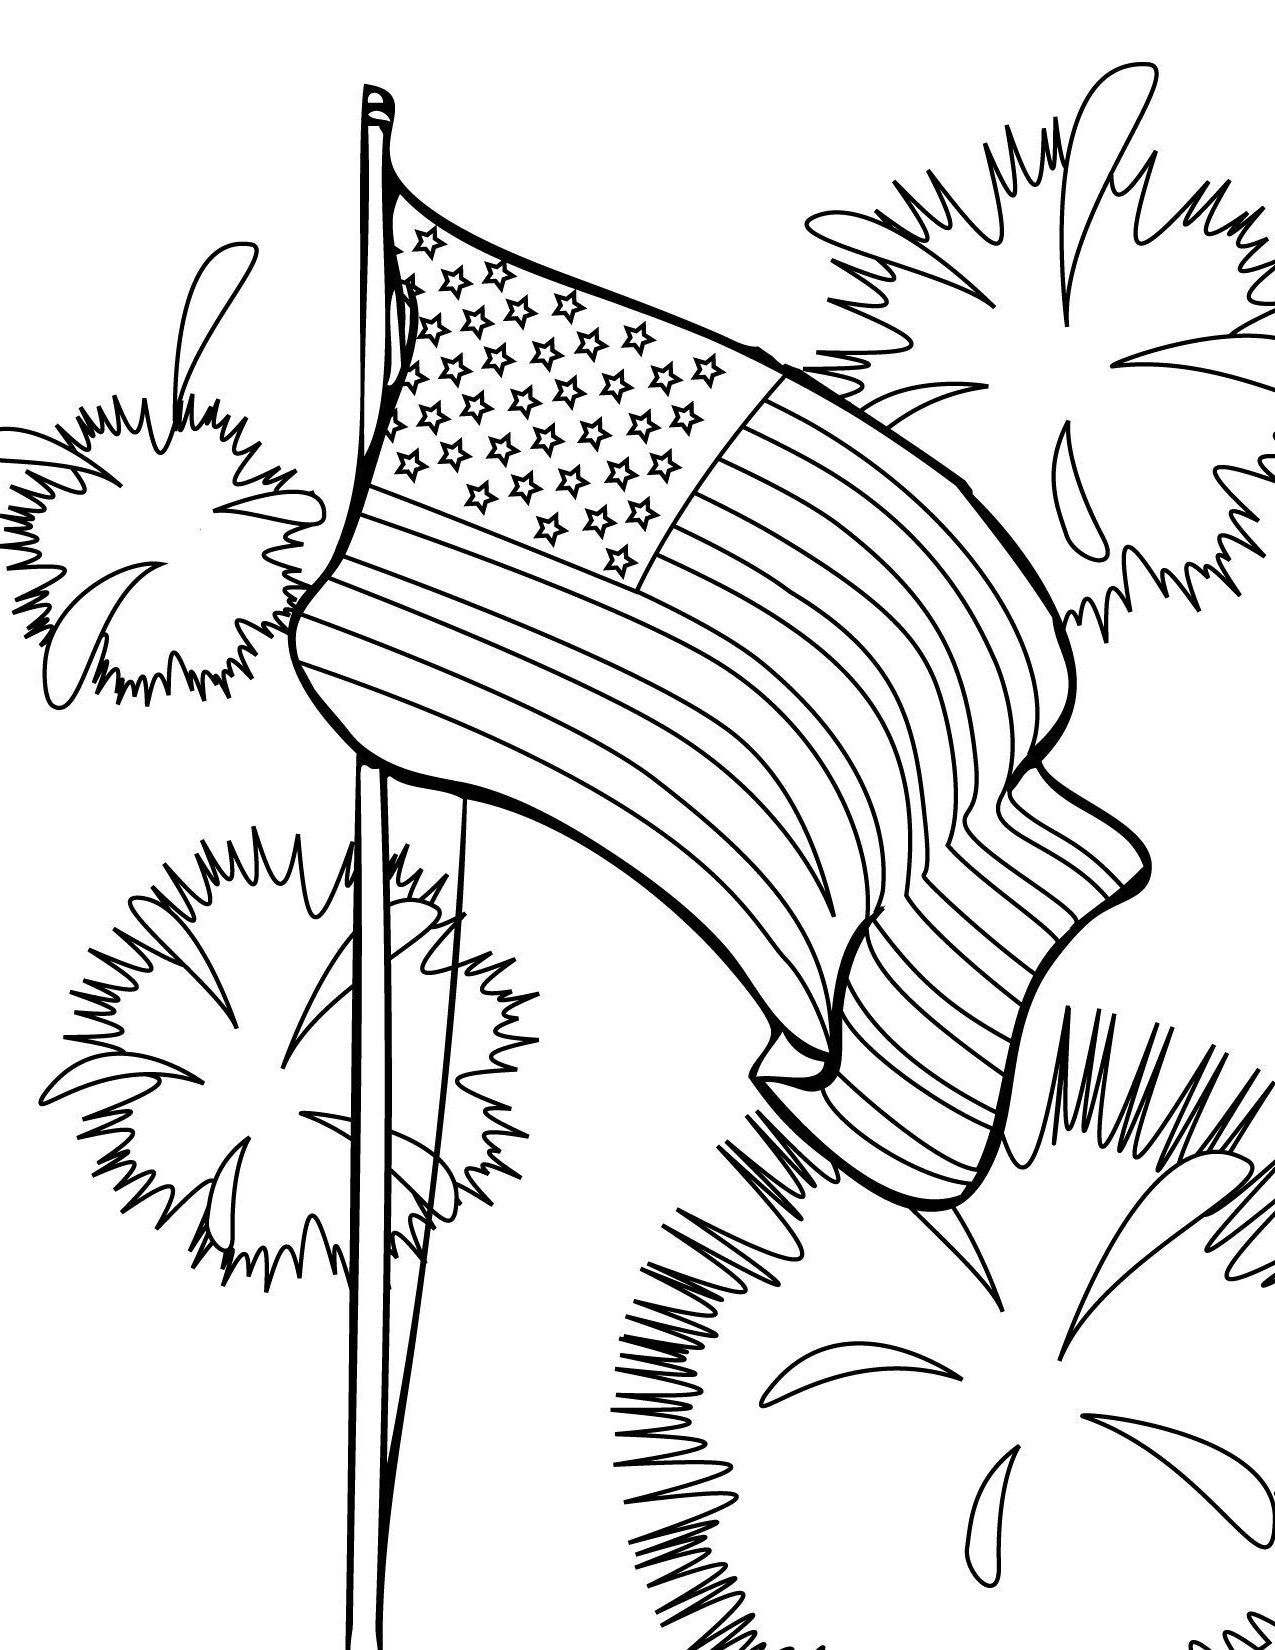 coloring flag american flag coloring page for the love of the country flag coloring 1 1